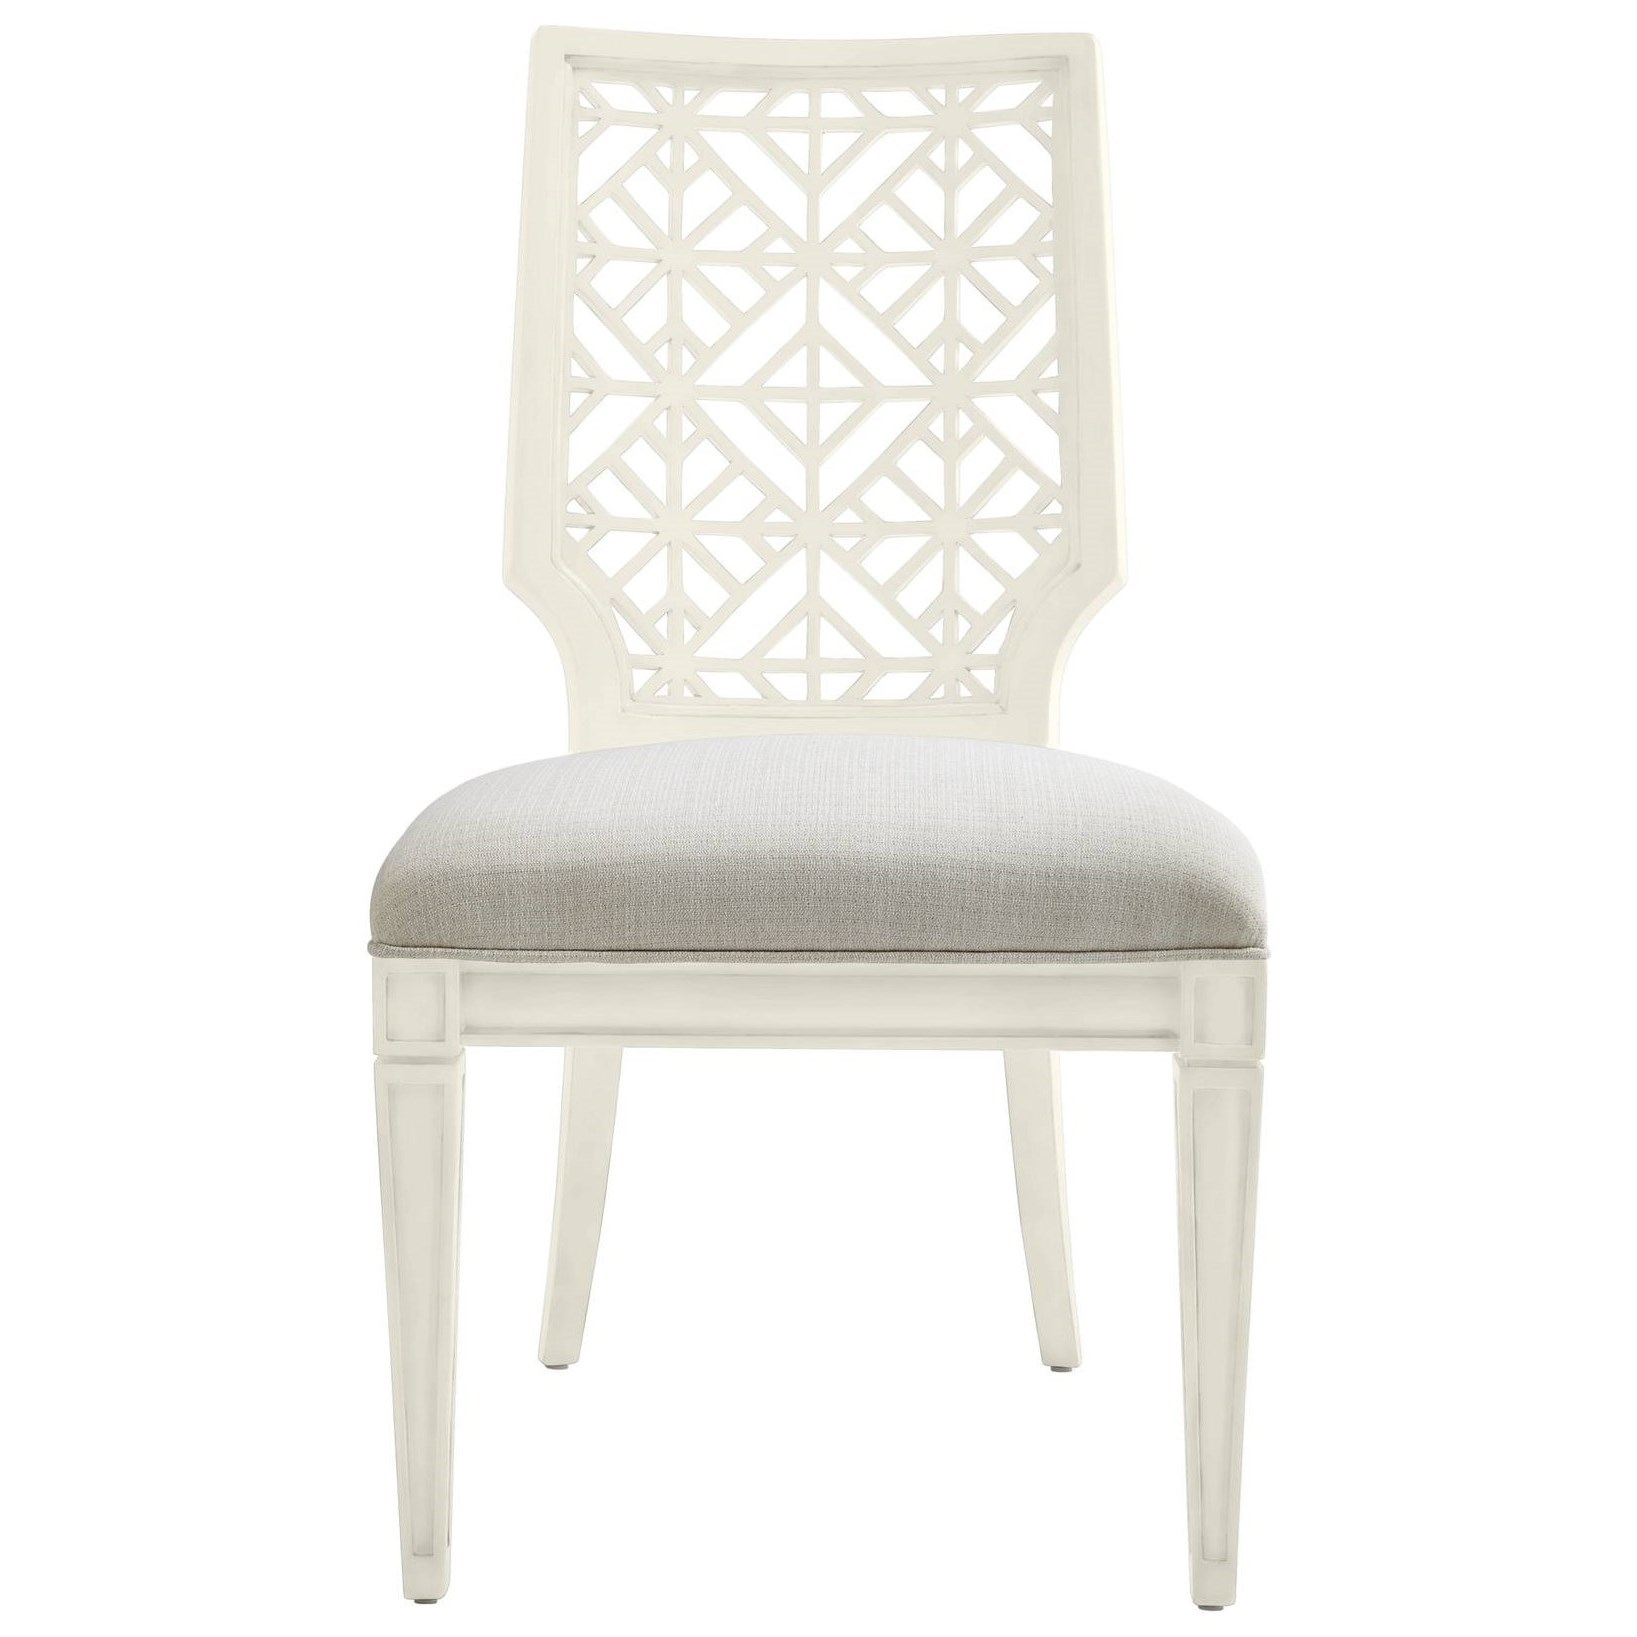 Stanley Furniture Coastal Living Oasis Catalina Side Chair - Item Number: 527-21-60